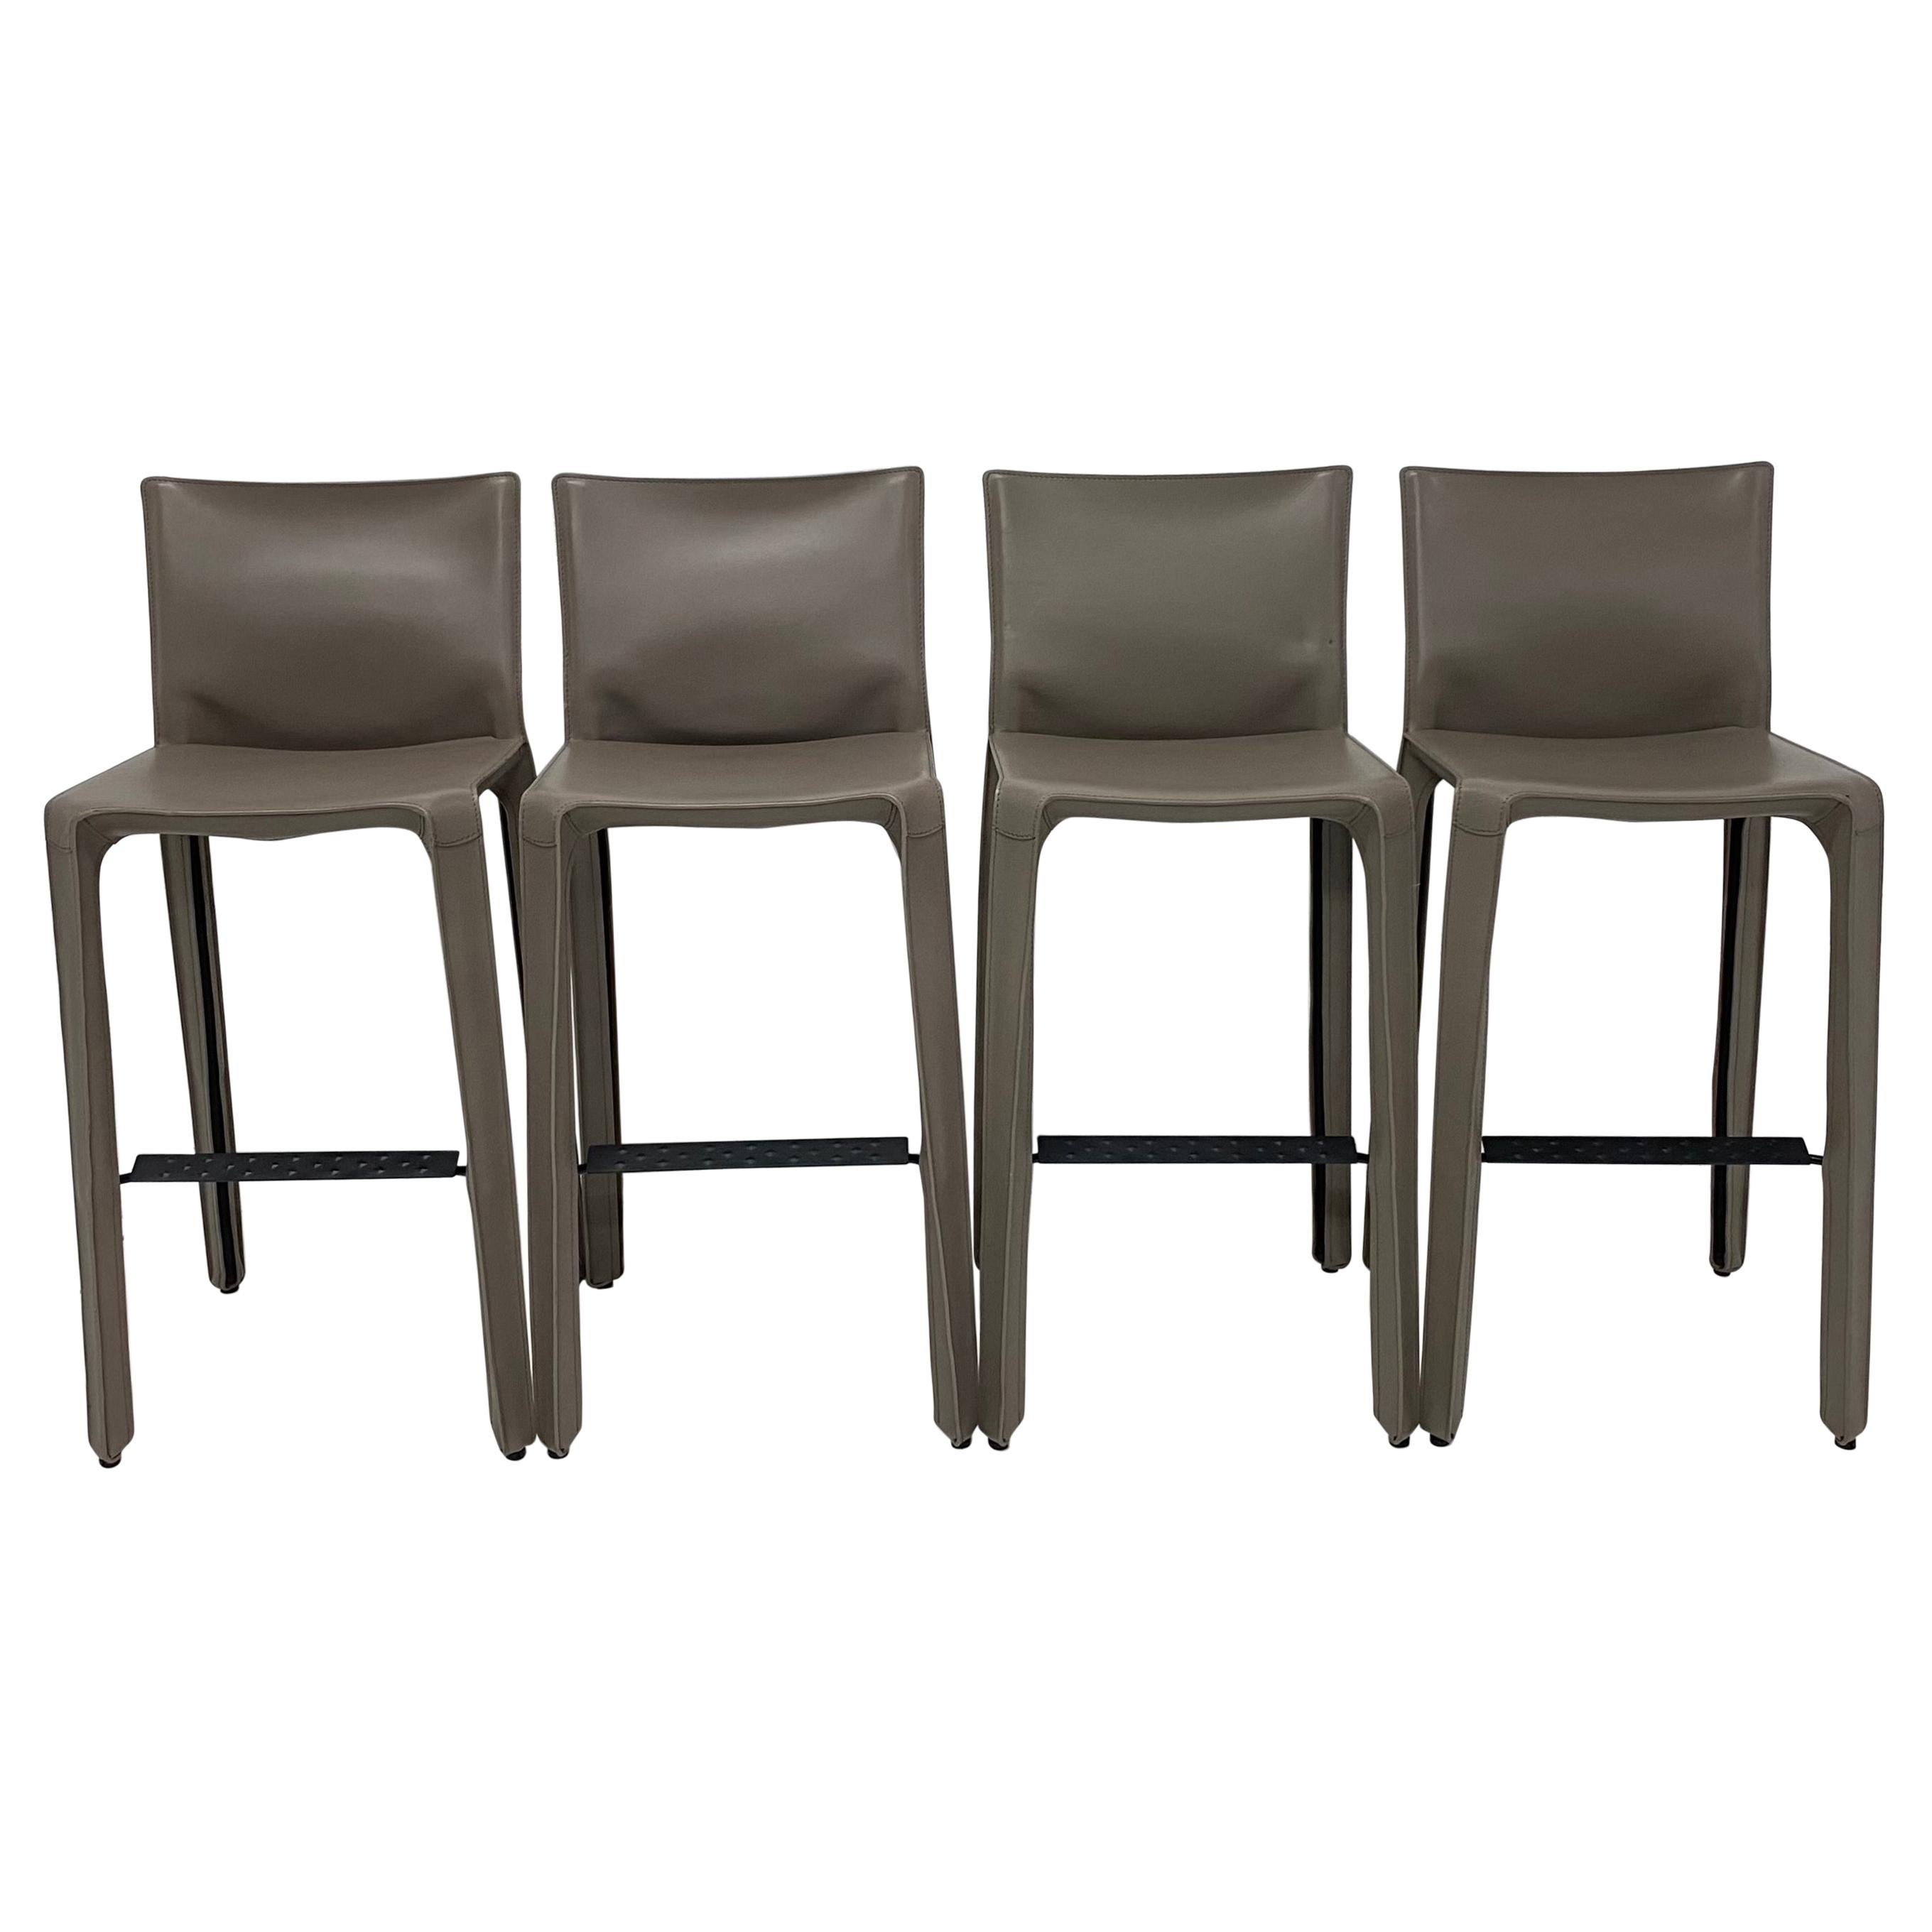 Mario Bellini Taupe Gray Leather CAB Barstools for Cassina, Set of Four